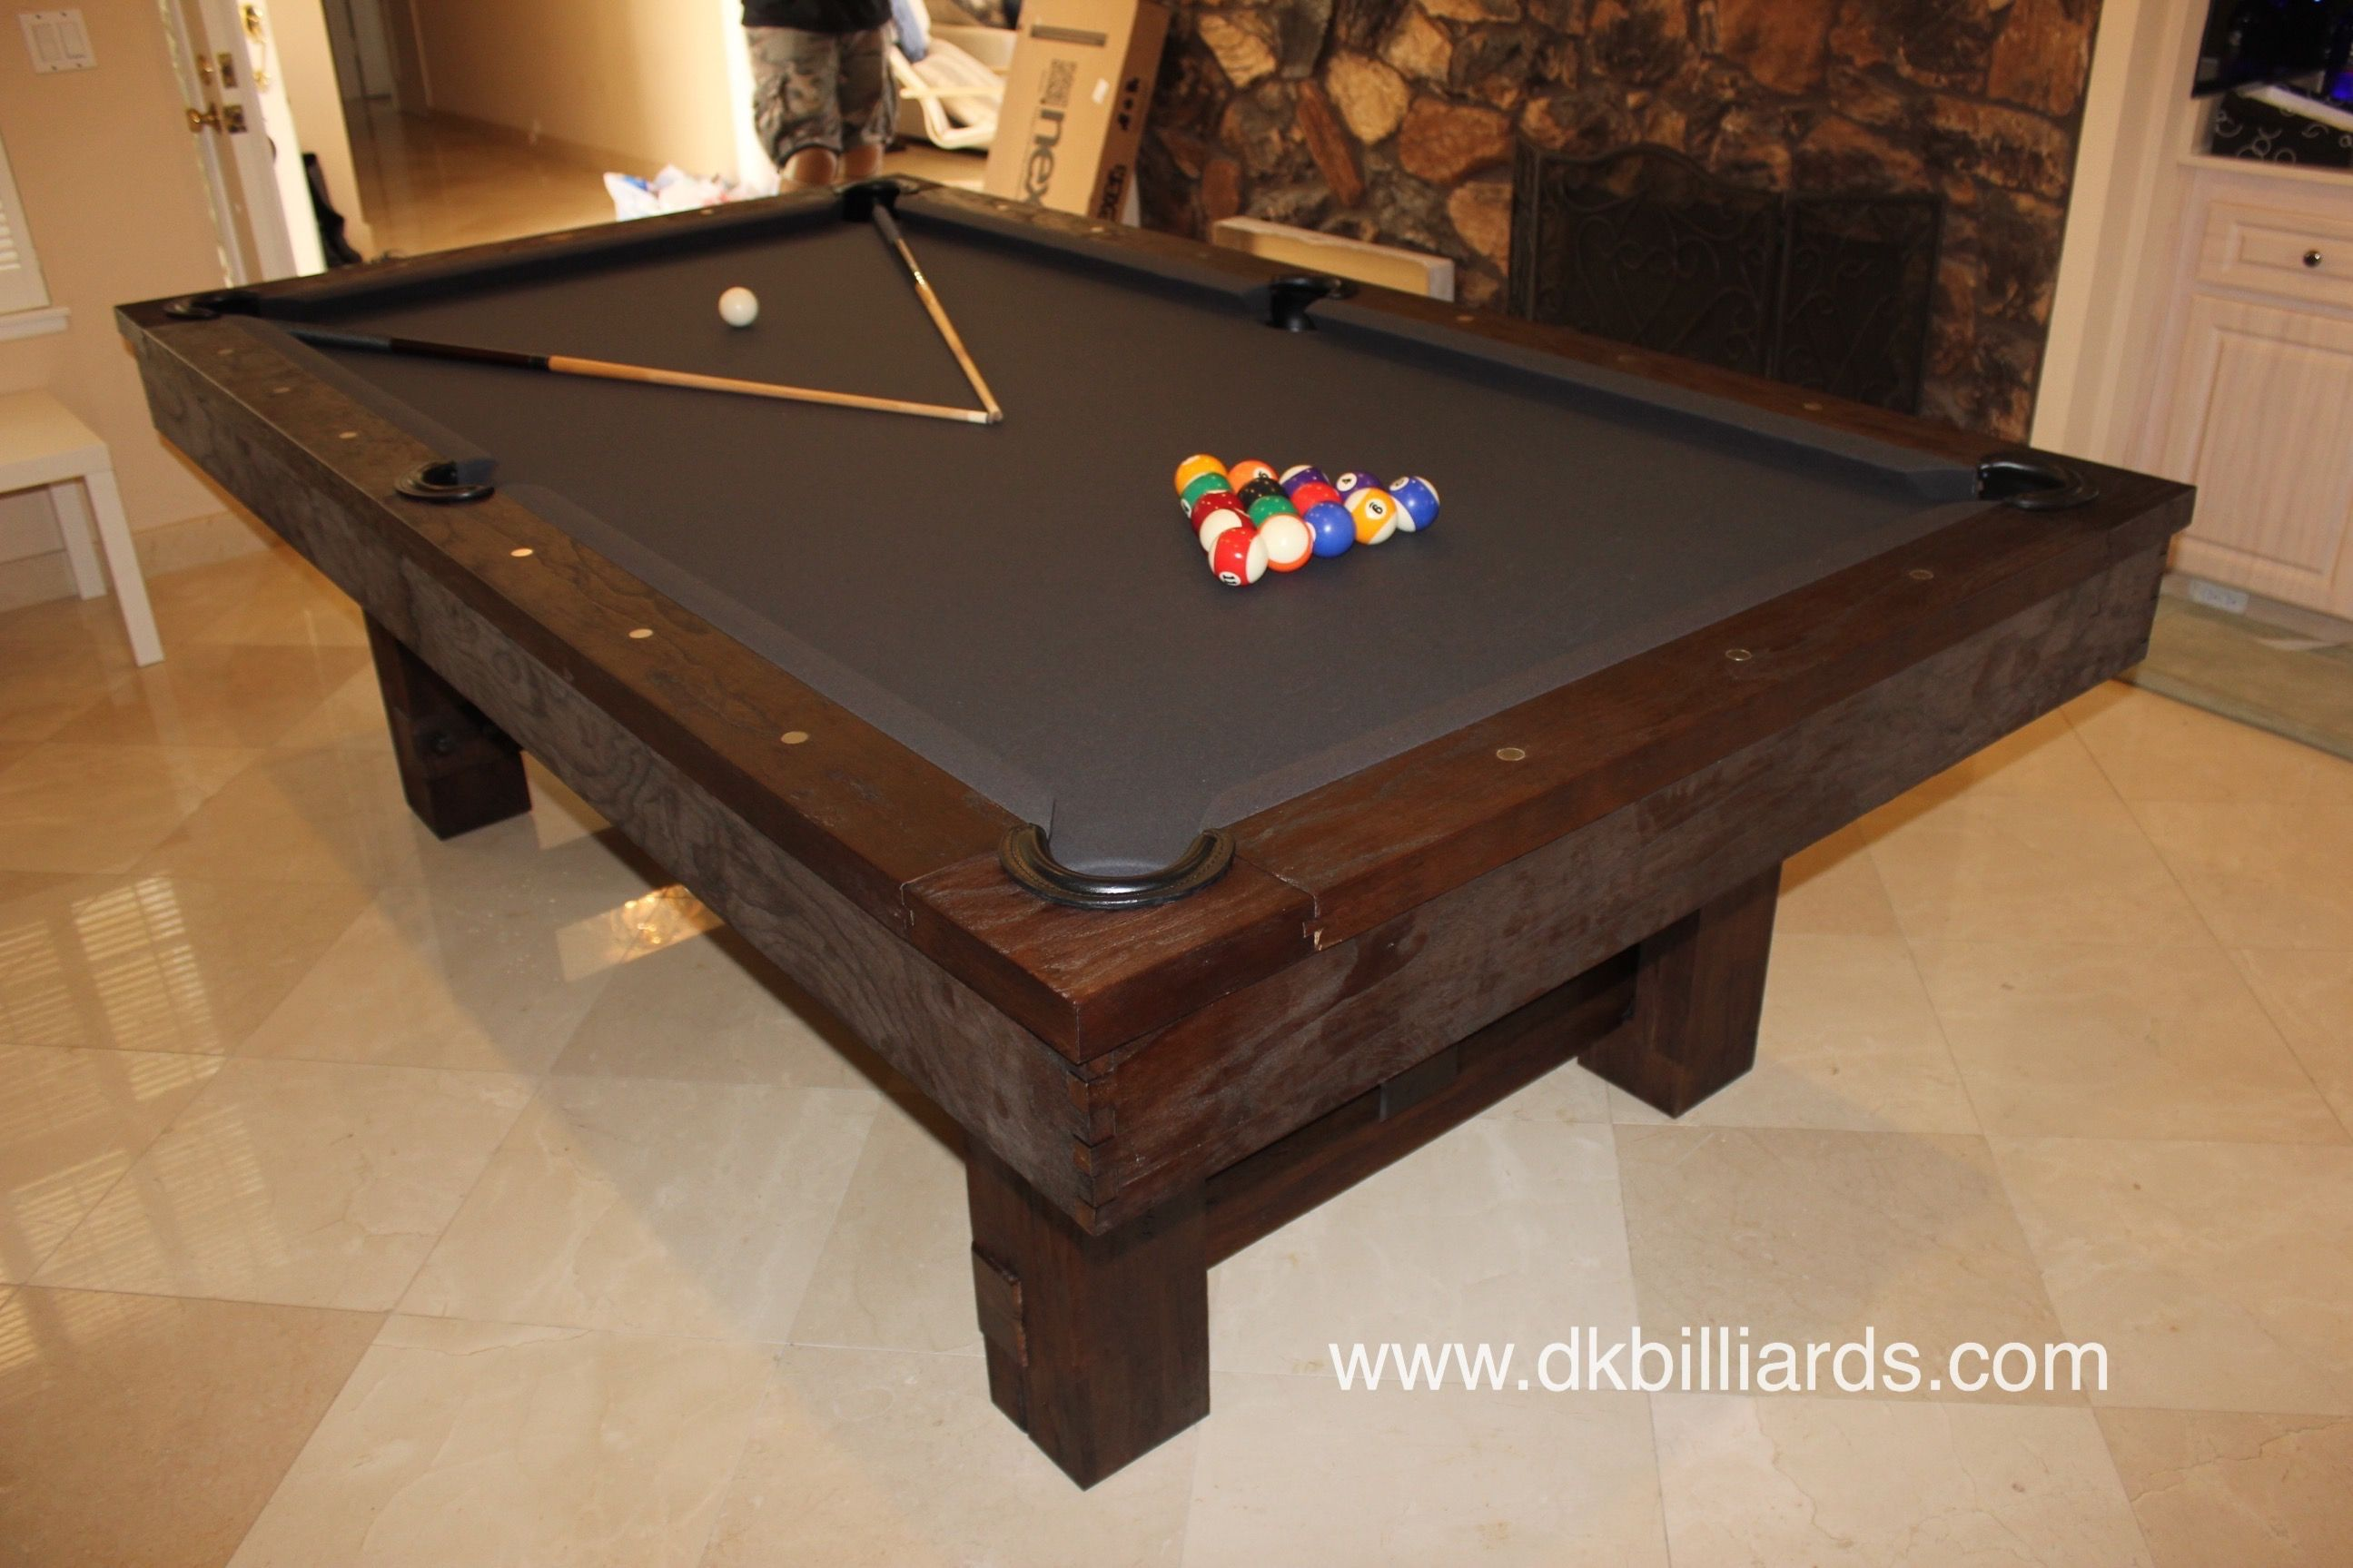 grey felt pool table bindu bhatia astrology